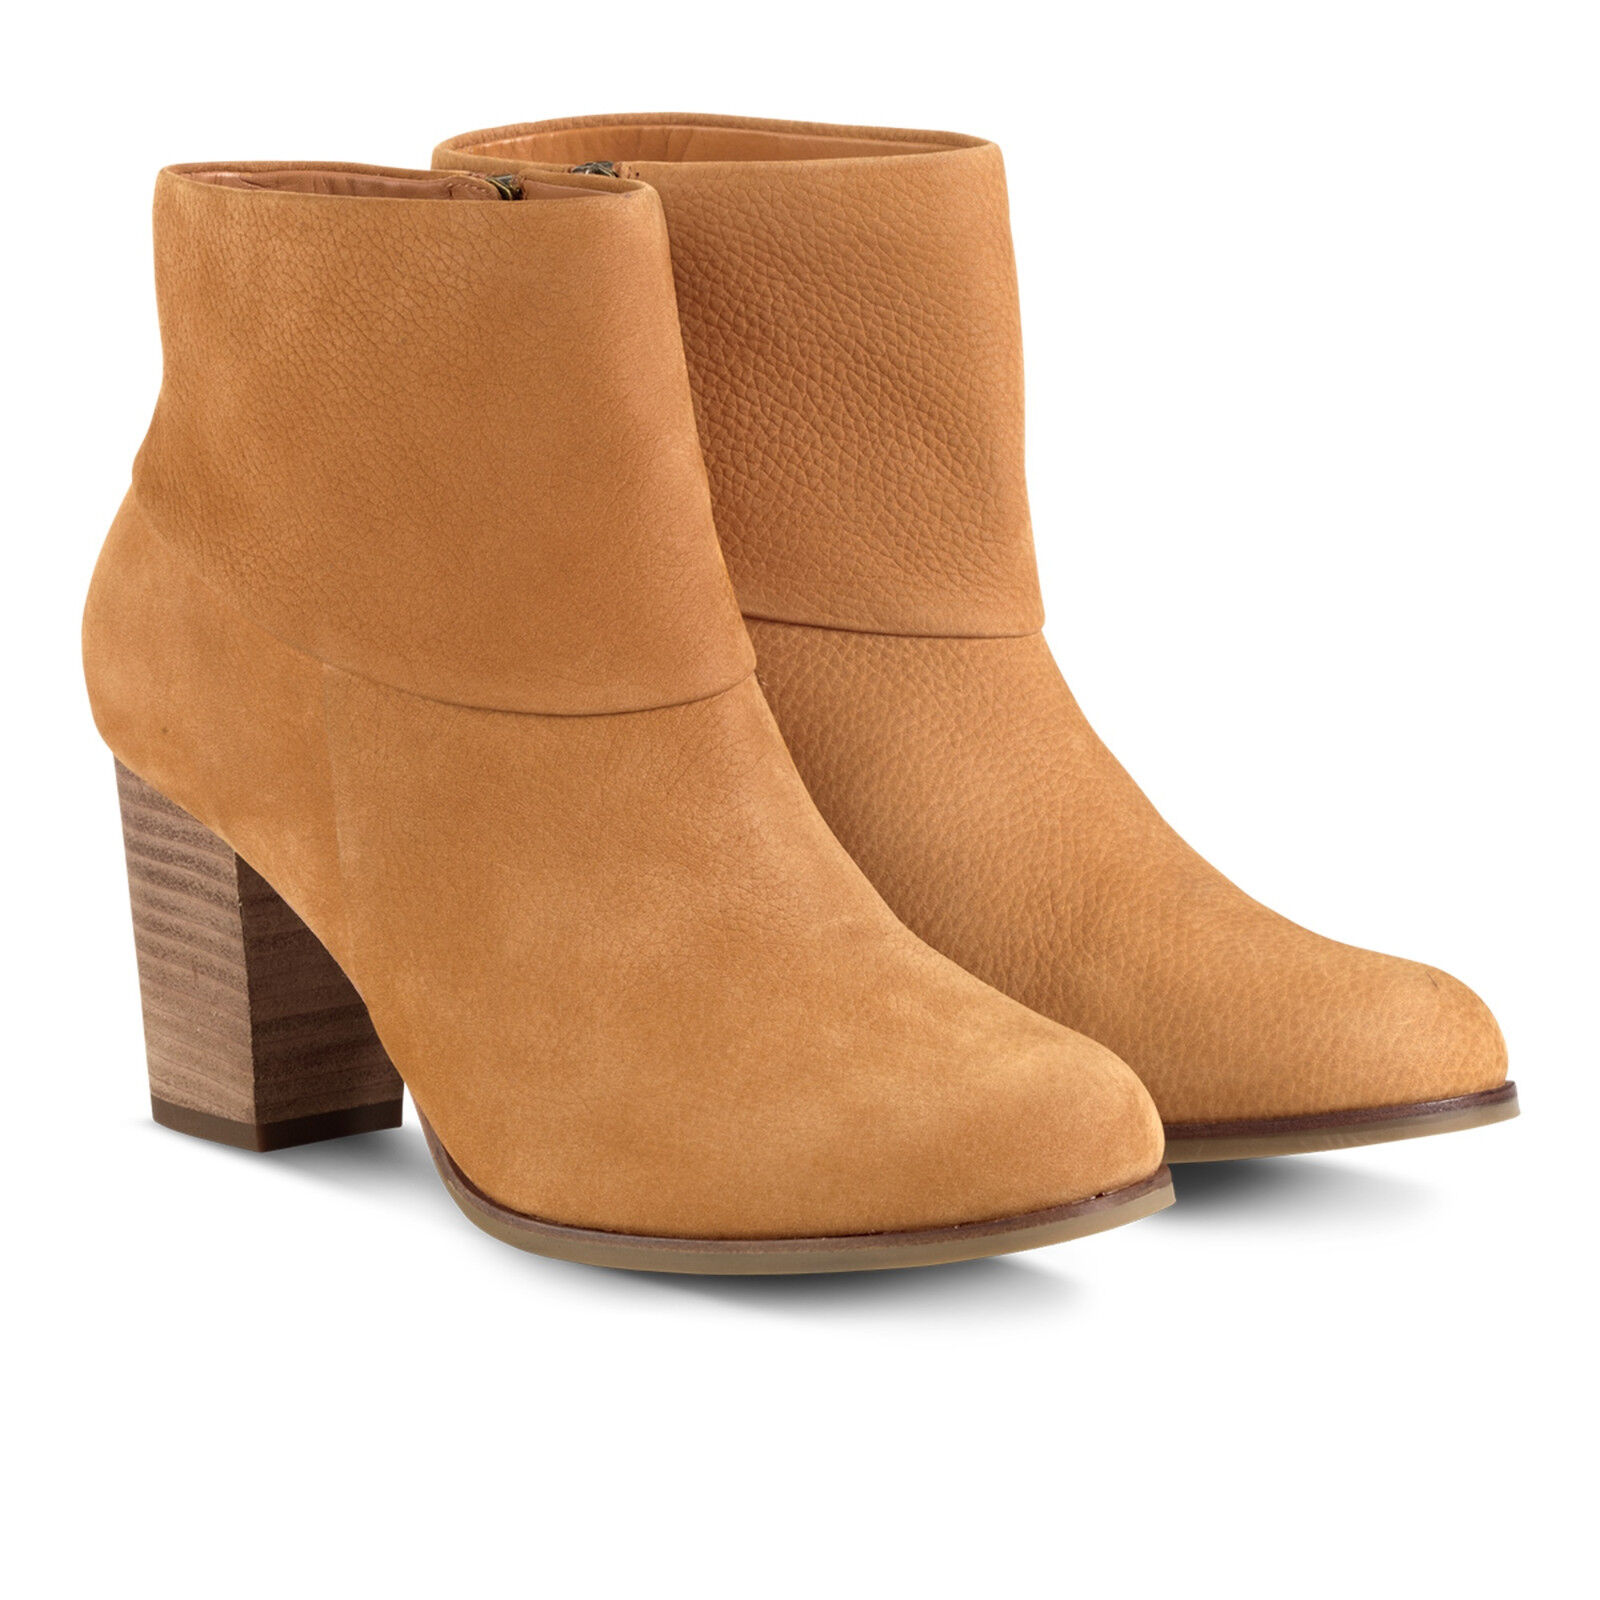 $278 NEW Cole Haan Cassidy Ankle Bootie Boot in Camello Nubuck size 7